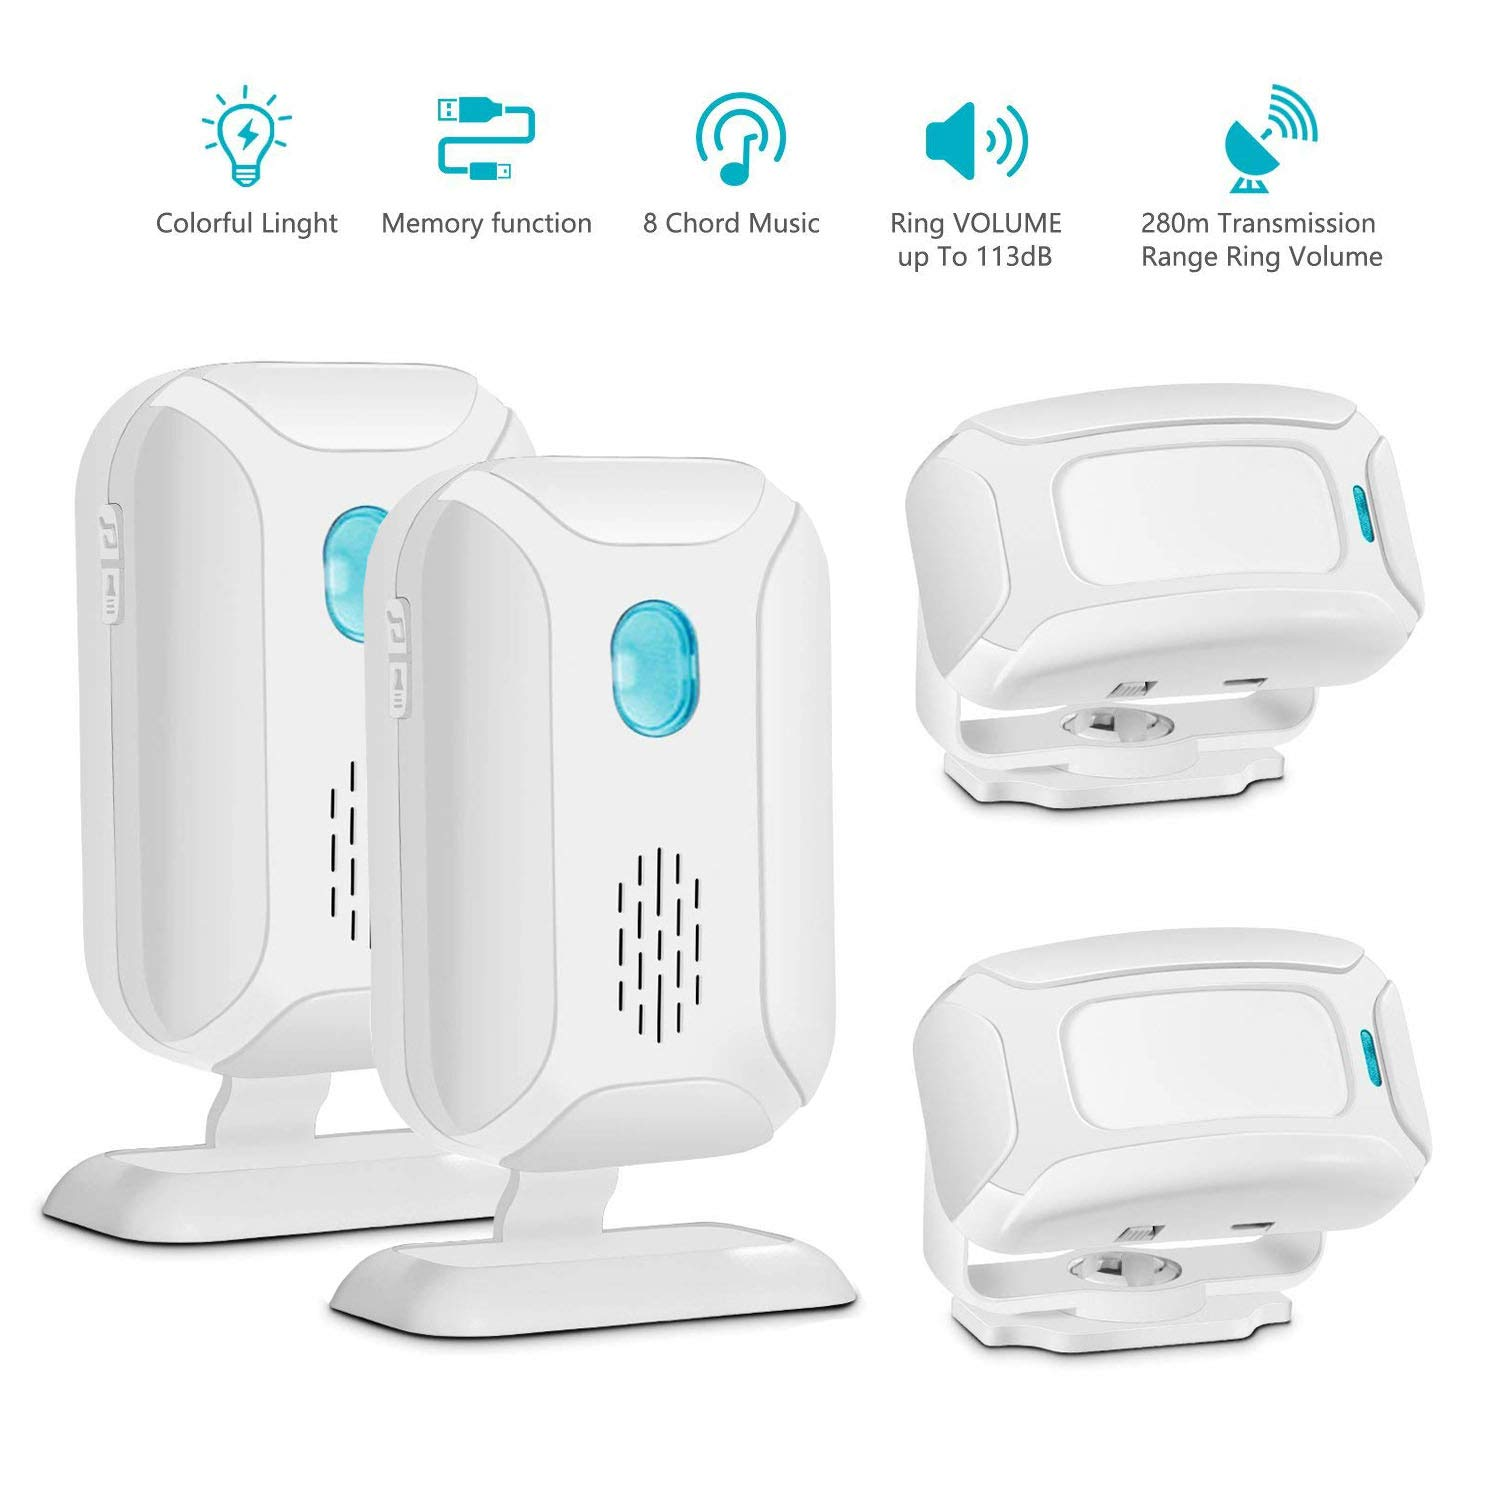 GREENCYCLE Motion Sensor Alarm/Doorbell/Alert, Home Security Driveway Alarm, Store Welcome Entry Chime,eldercareRange at 918ft 36 Chime Melodies (2 Receiver & 2 Motion Sensor)